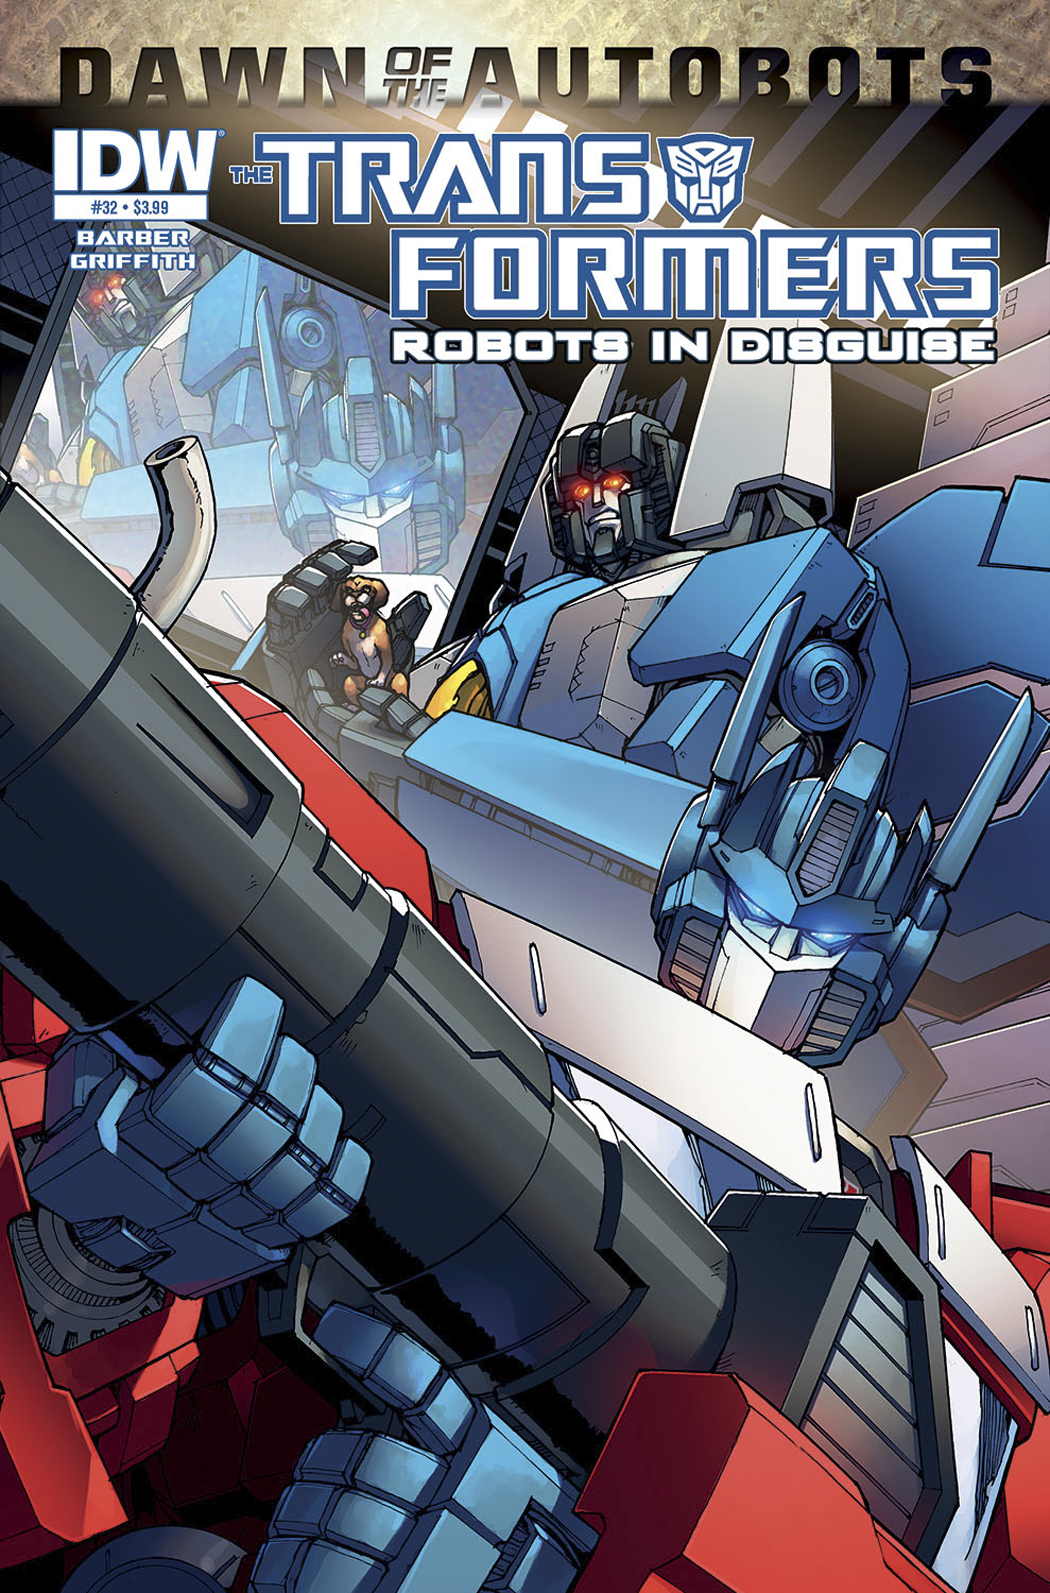 TRANSFORMERS ROBOTS IN DISGUISE #32 DAWN O/T AUTOBOTS